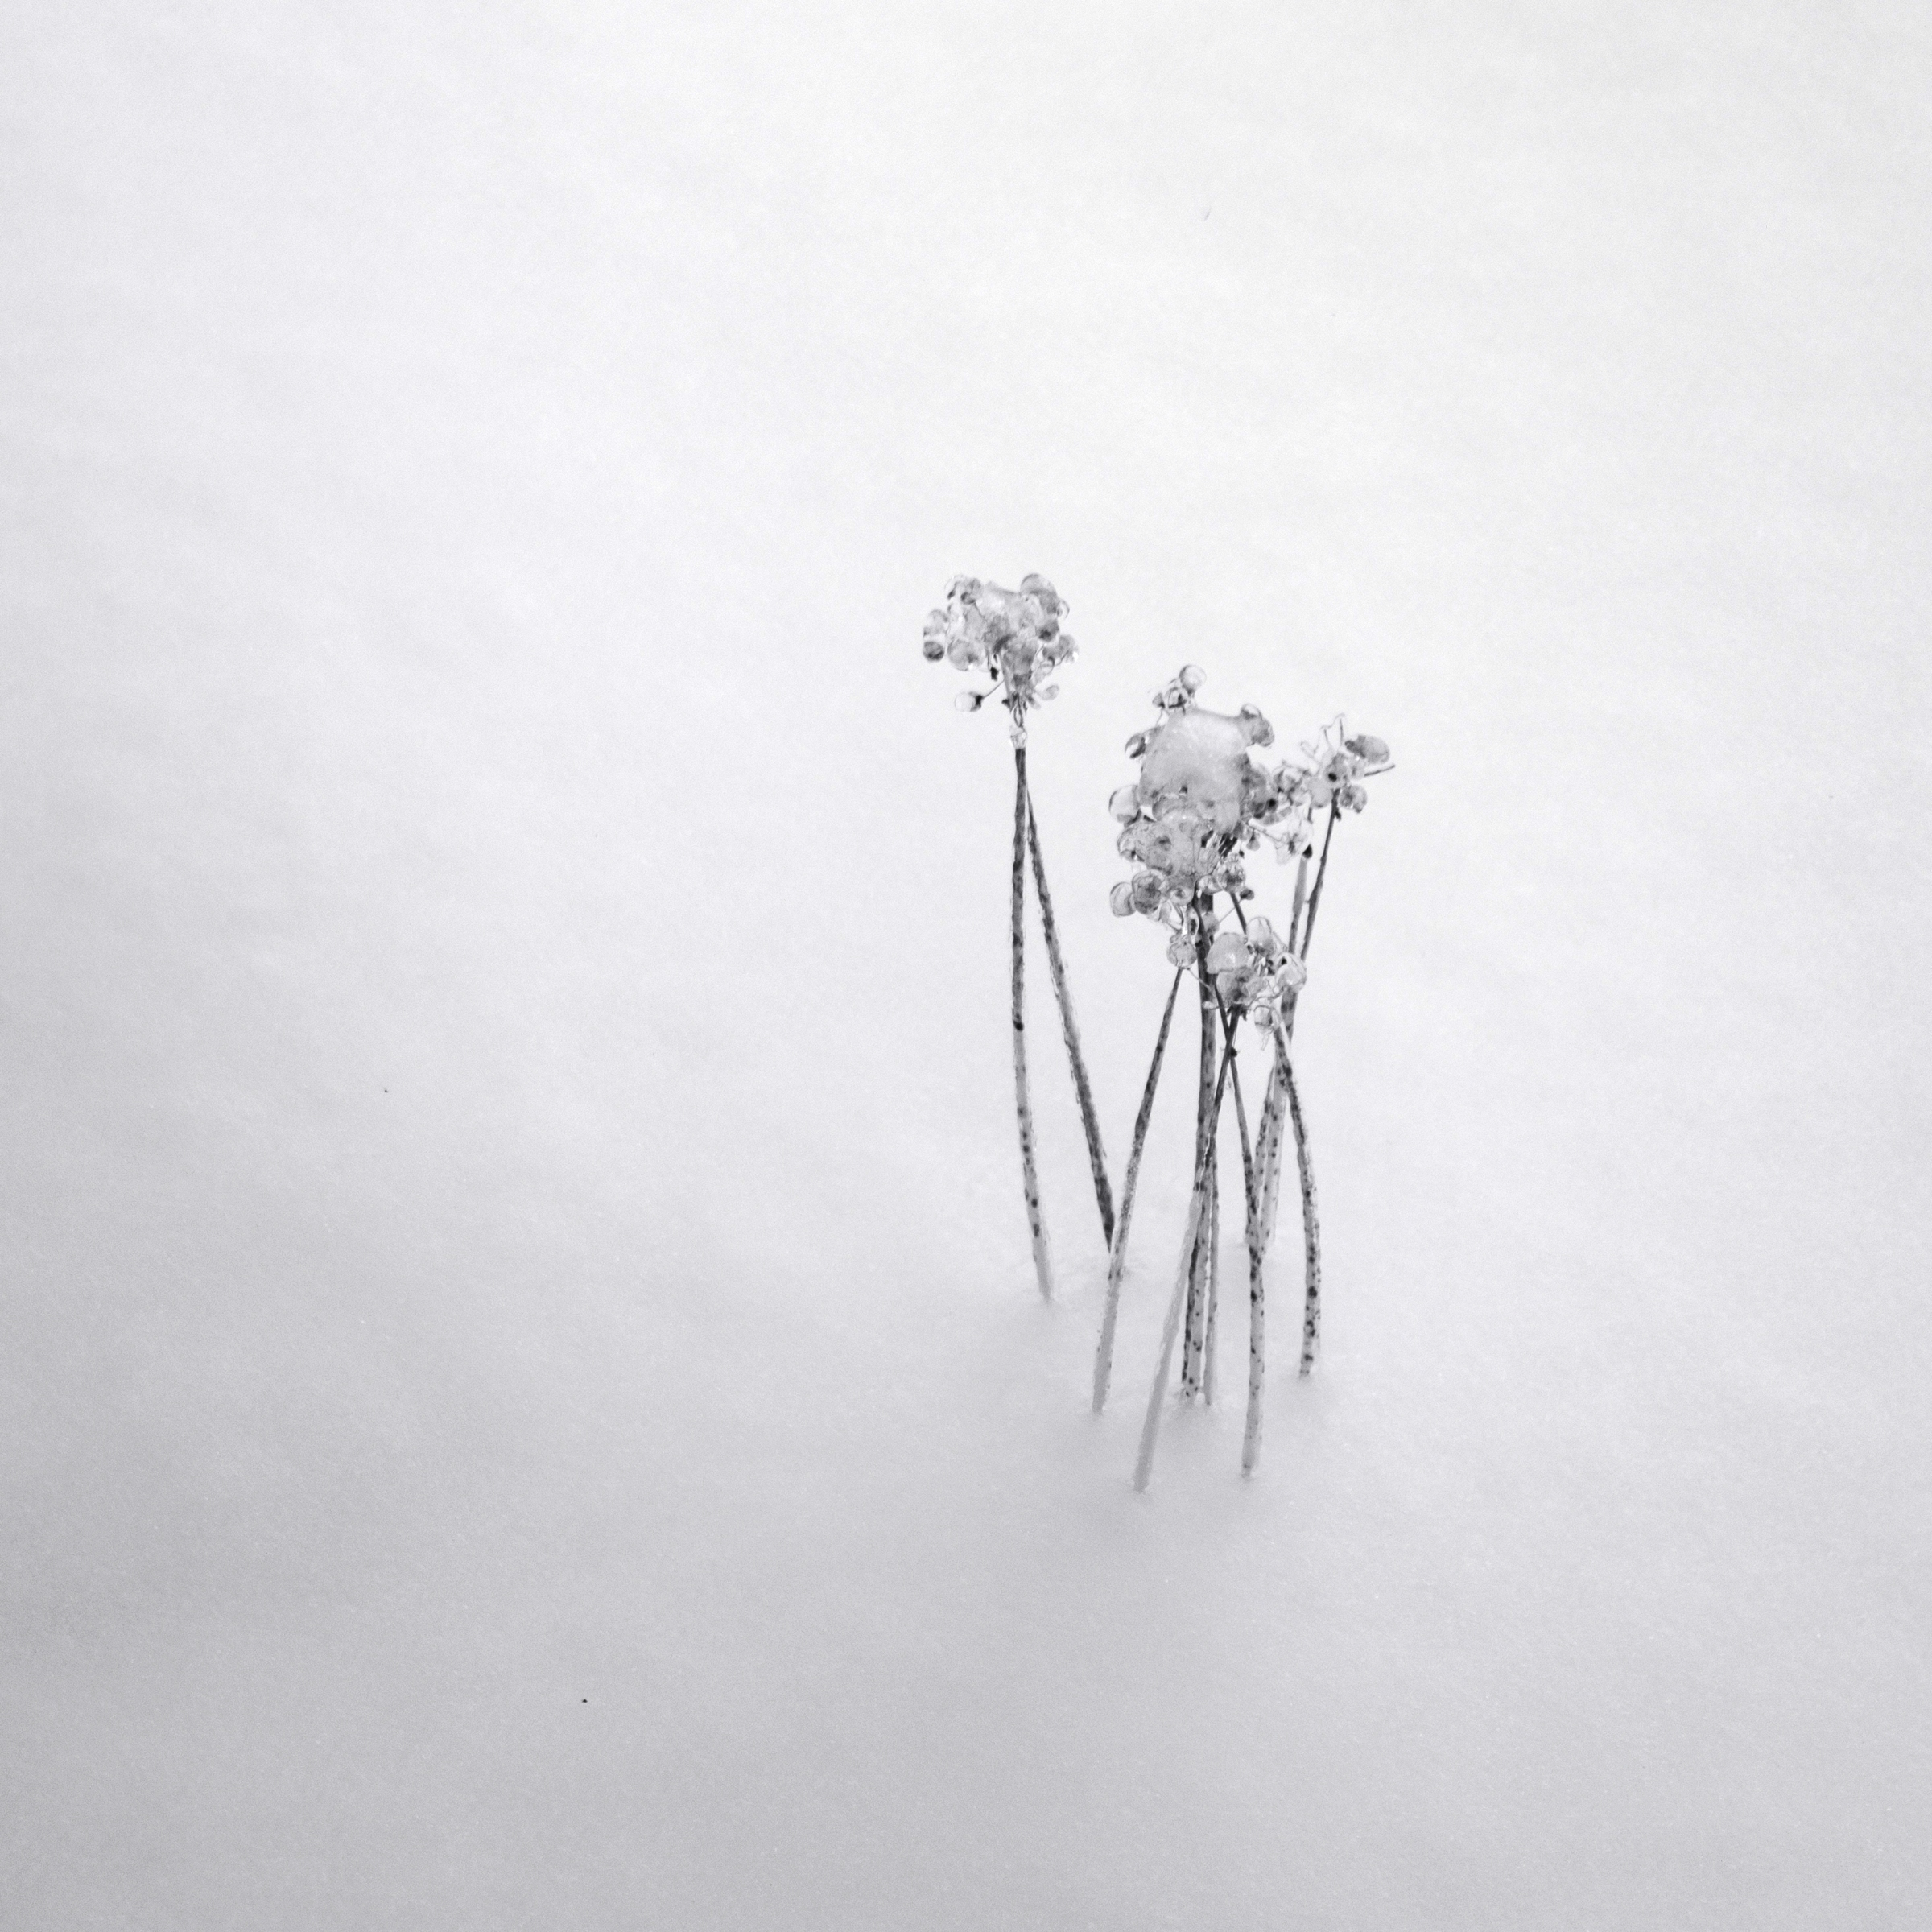 frozen seed heads in snow drift